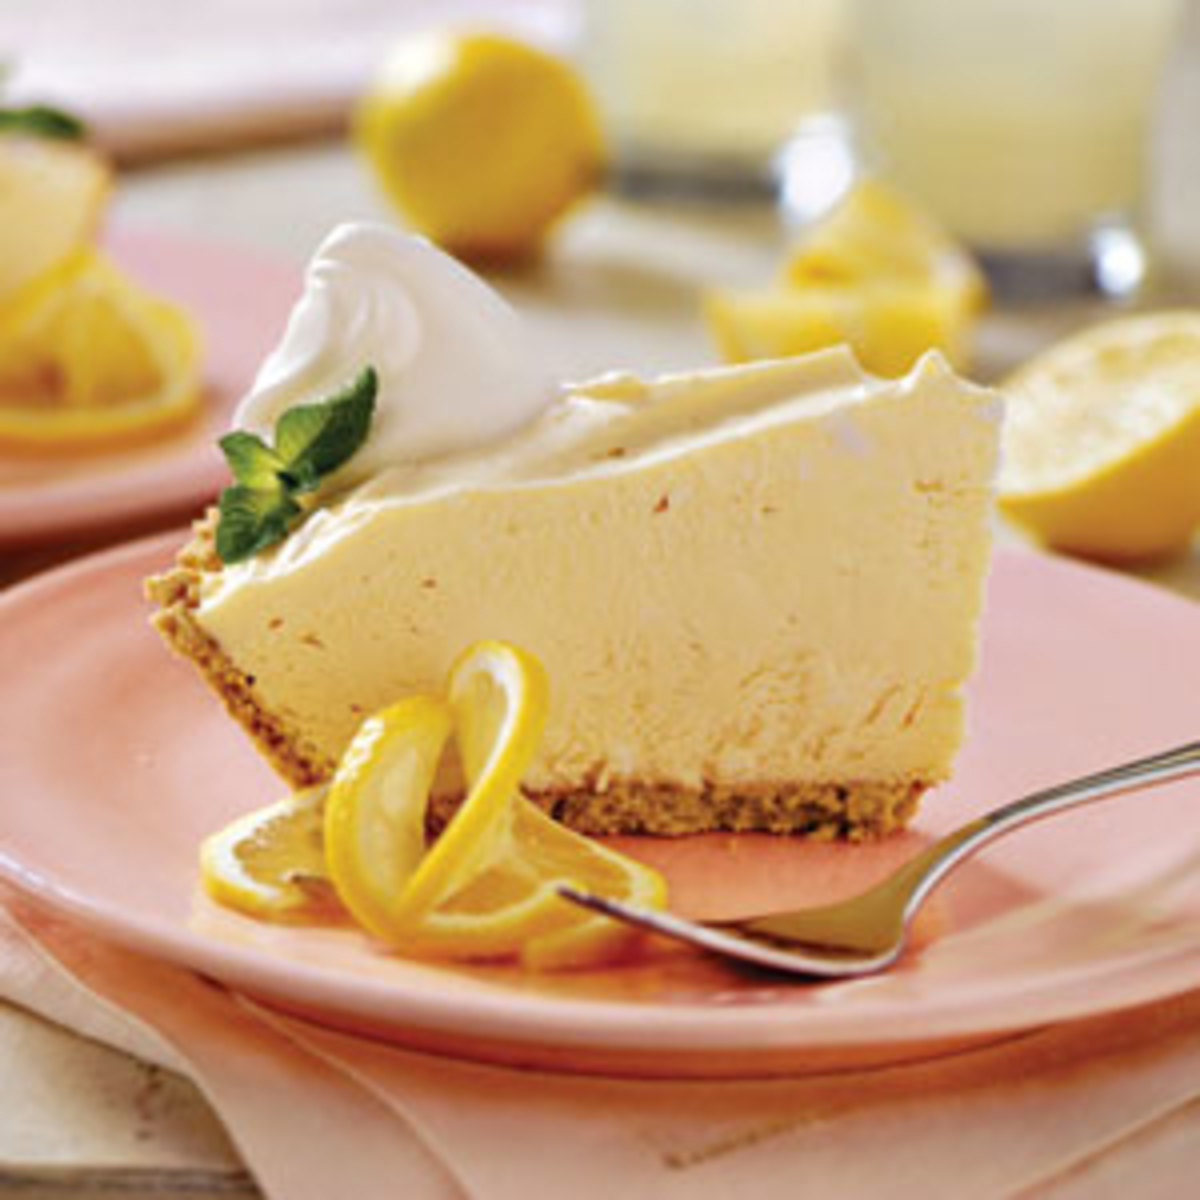 This pink lemonade pie is so tart and delicious. And so easy to make.